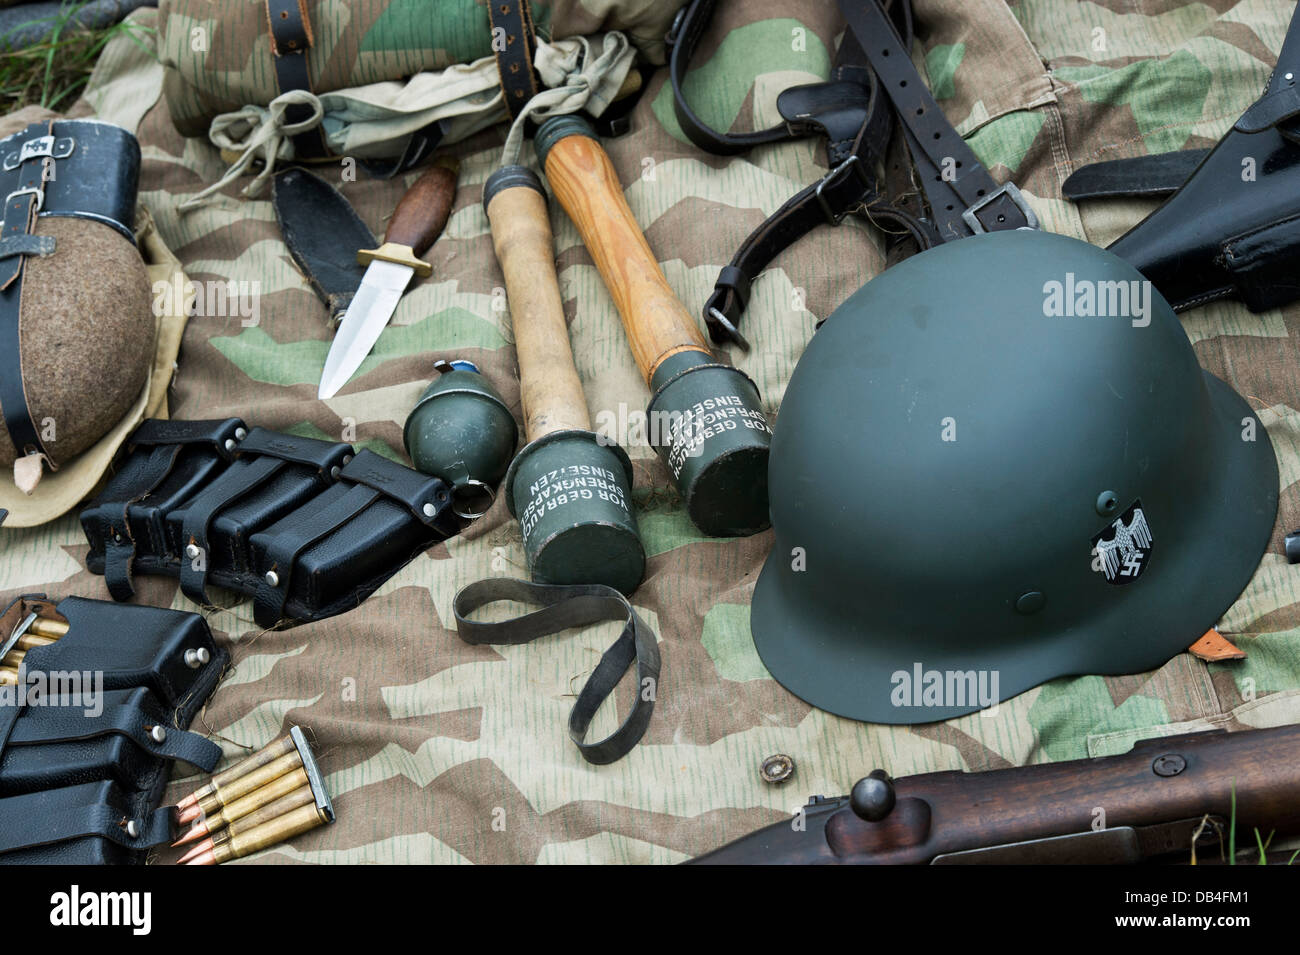 WW2 German army soldiers equipment - Stock Image